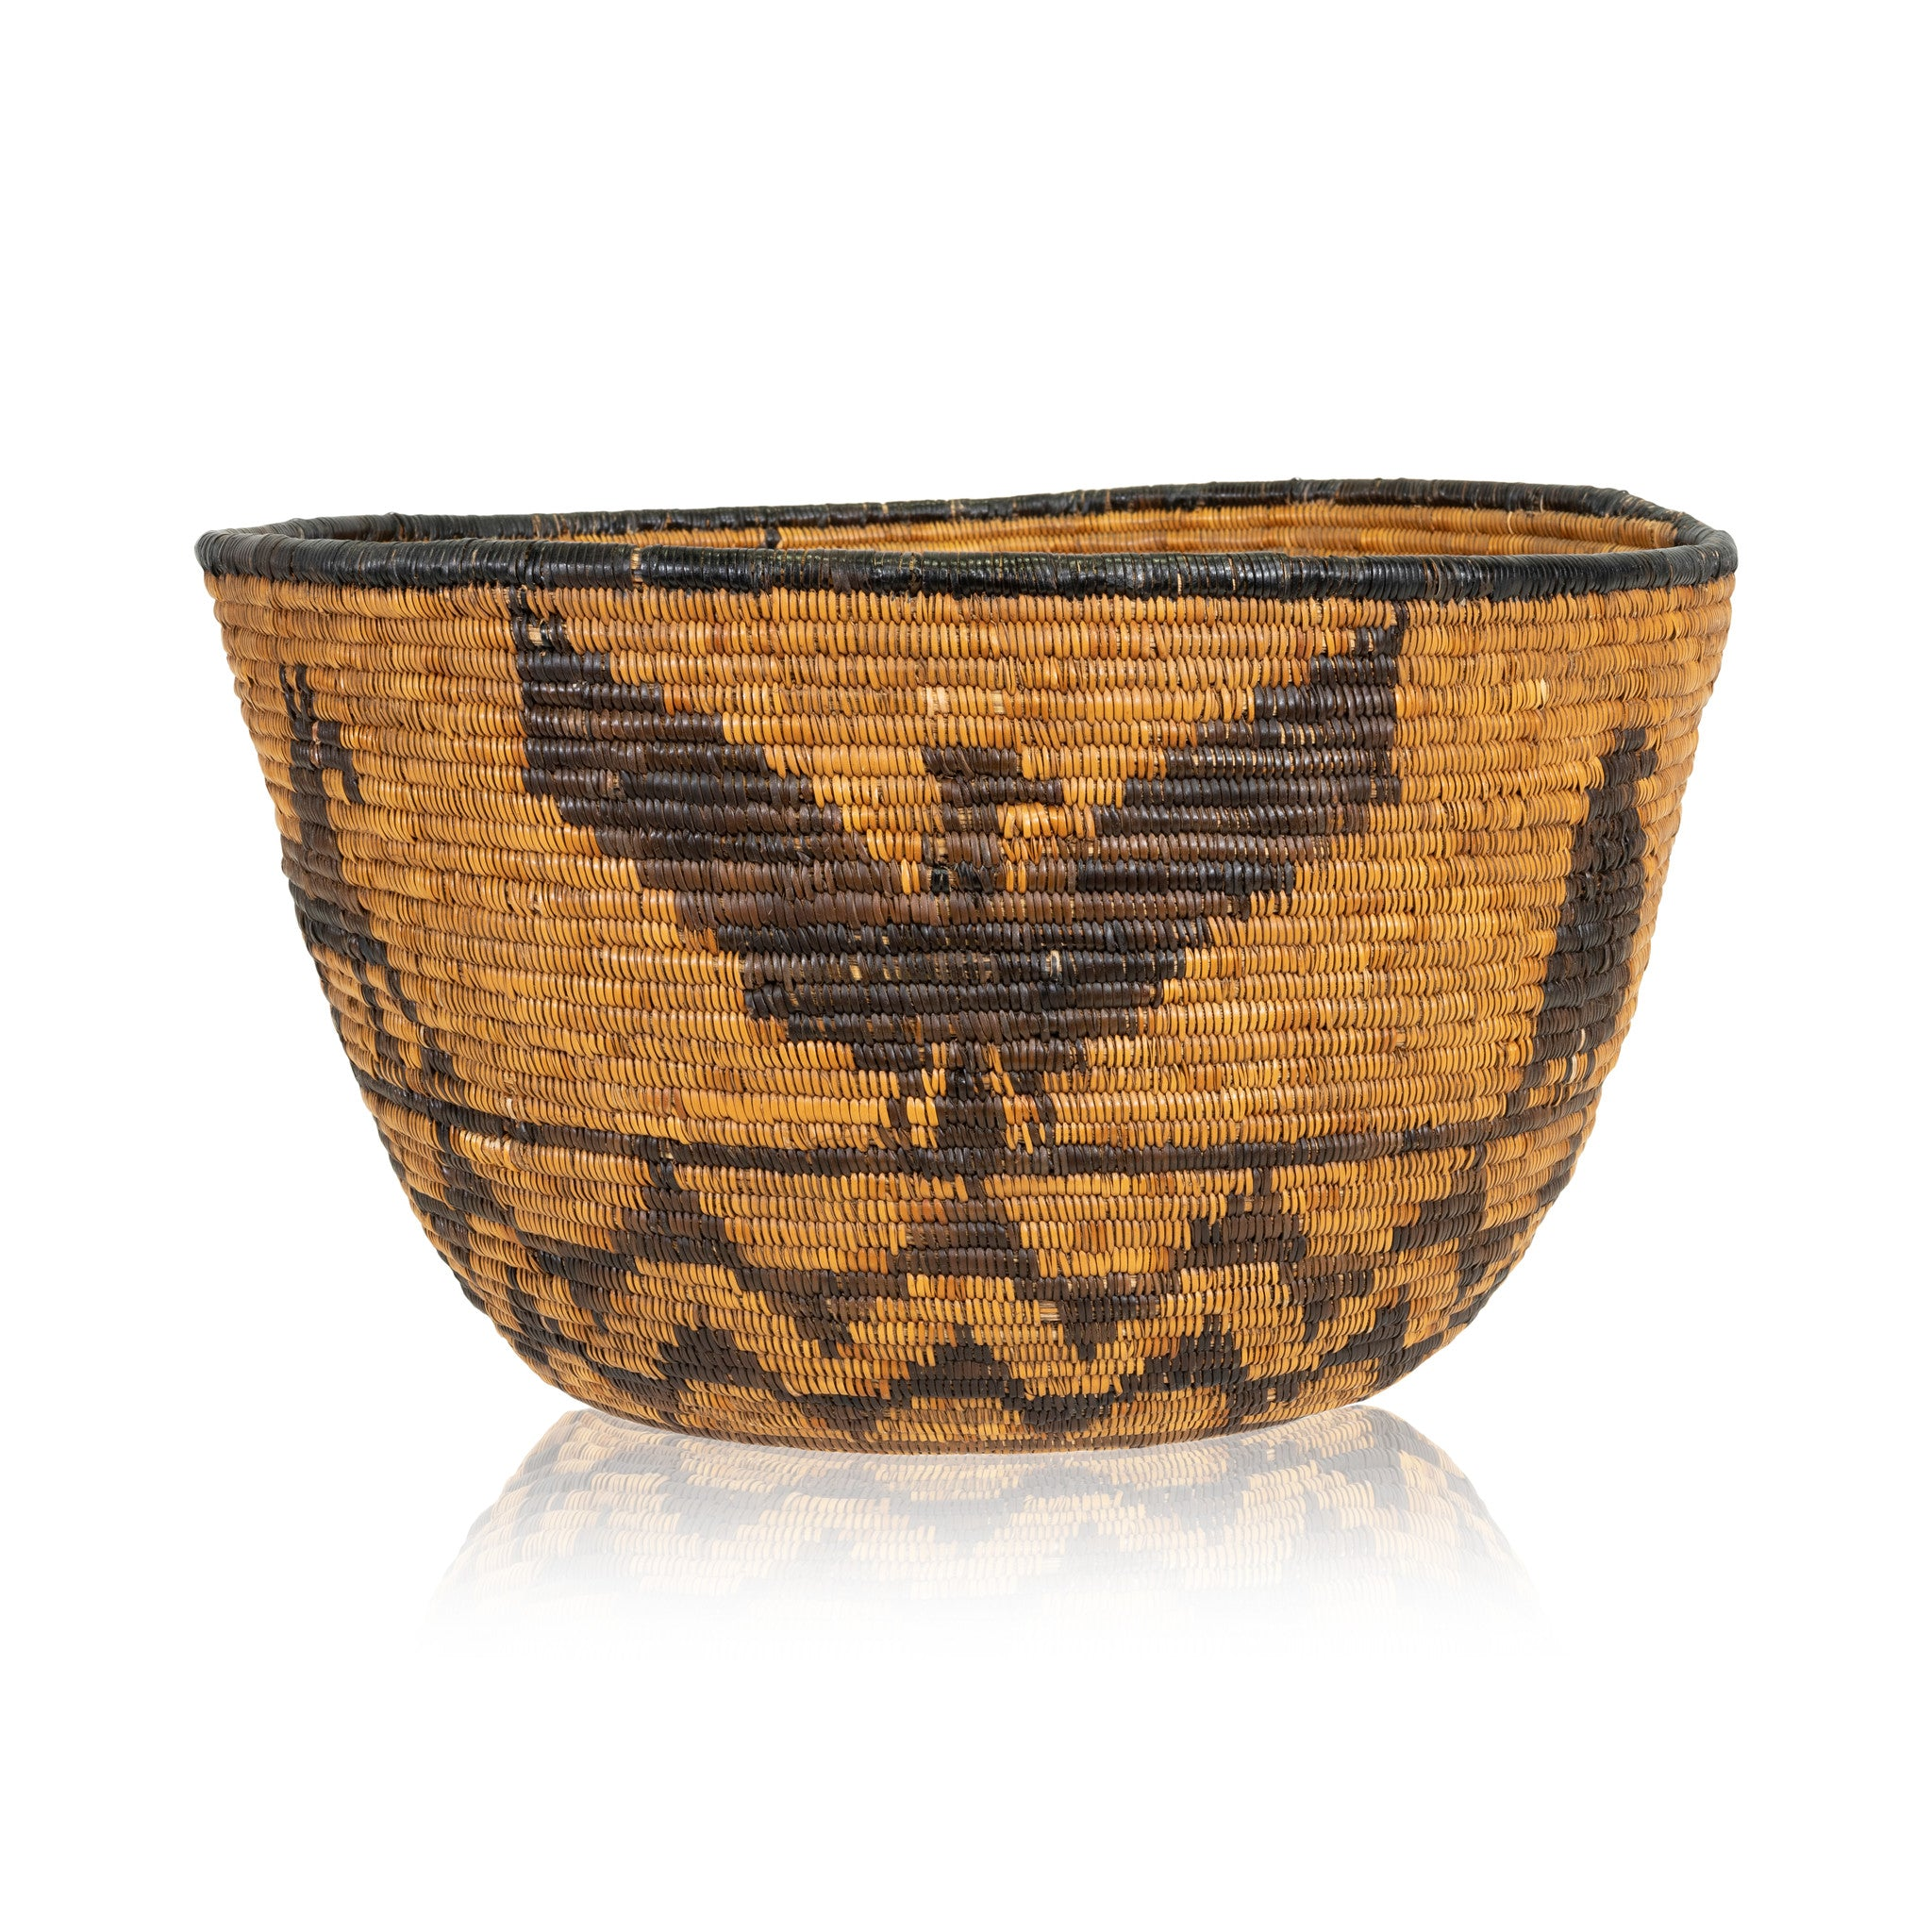 Mission Pictorial Basket baskets, eagles, horses-native american, mission